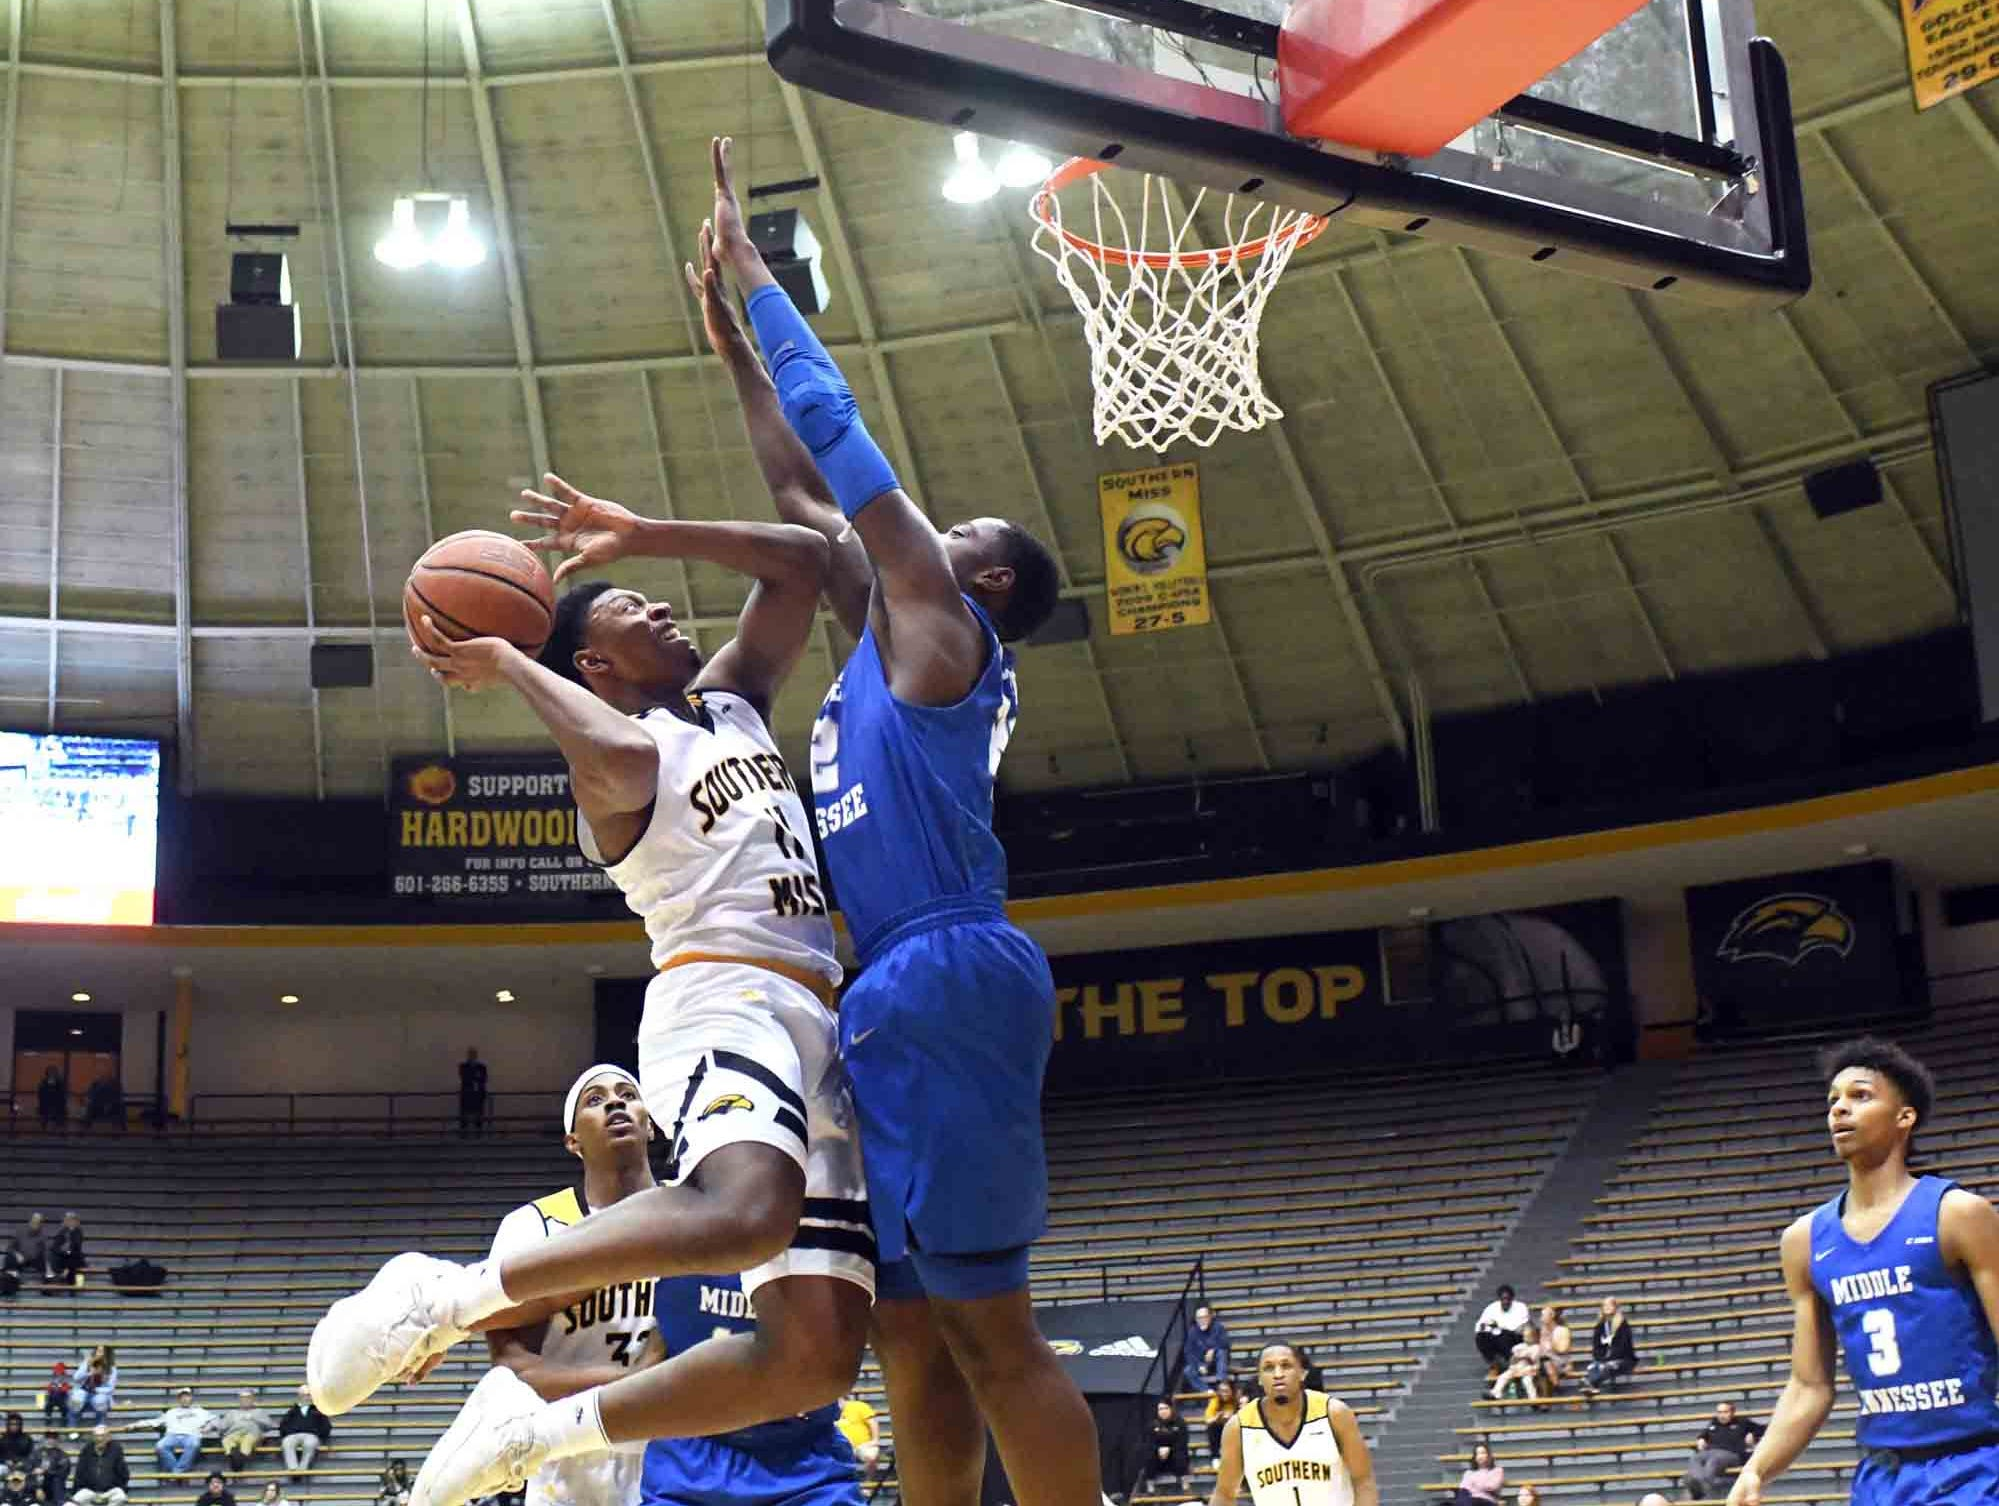 Southern Miss guard Ladavius Draine shoots for the basket in a  game against Middle Tennessee in Reed Green Coliseum on Thursday, January 10, 2019.